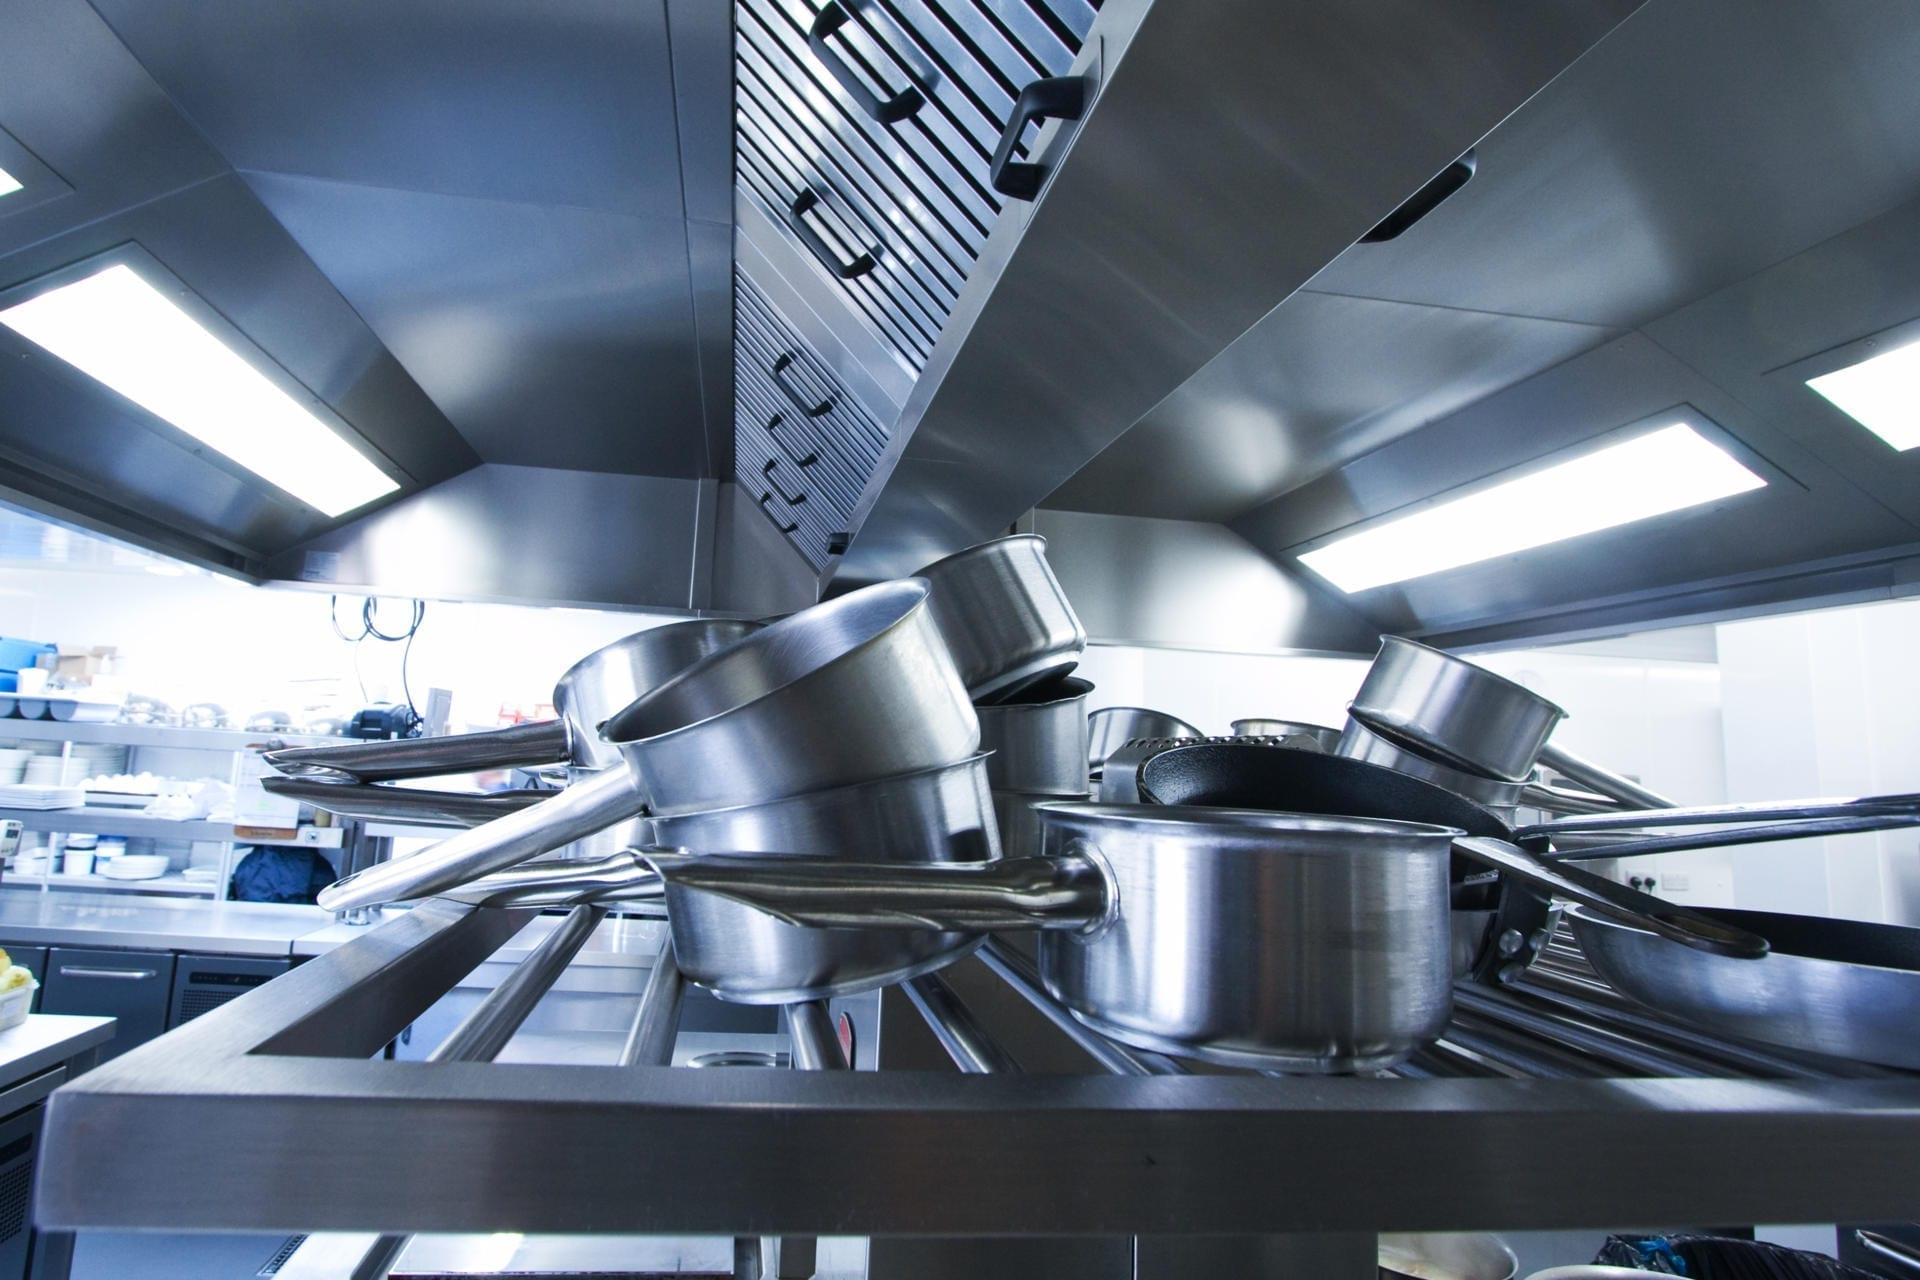 Ockenden-Manor-Hotel-Sussex-Restaurant-Kitchen-Fabrication-Stainless-Steel-Commercial-spacecatering_8